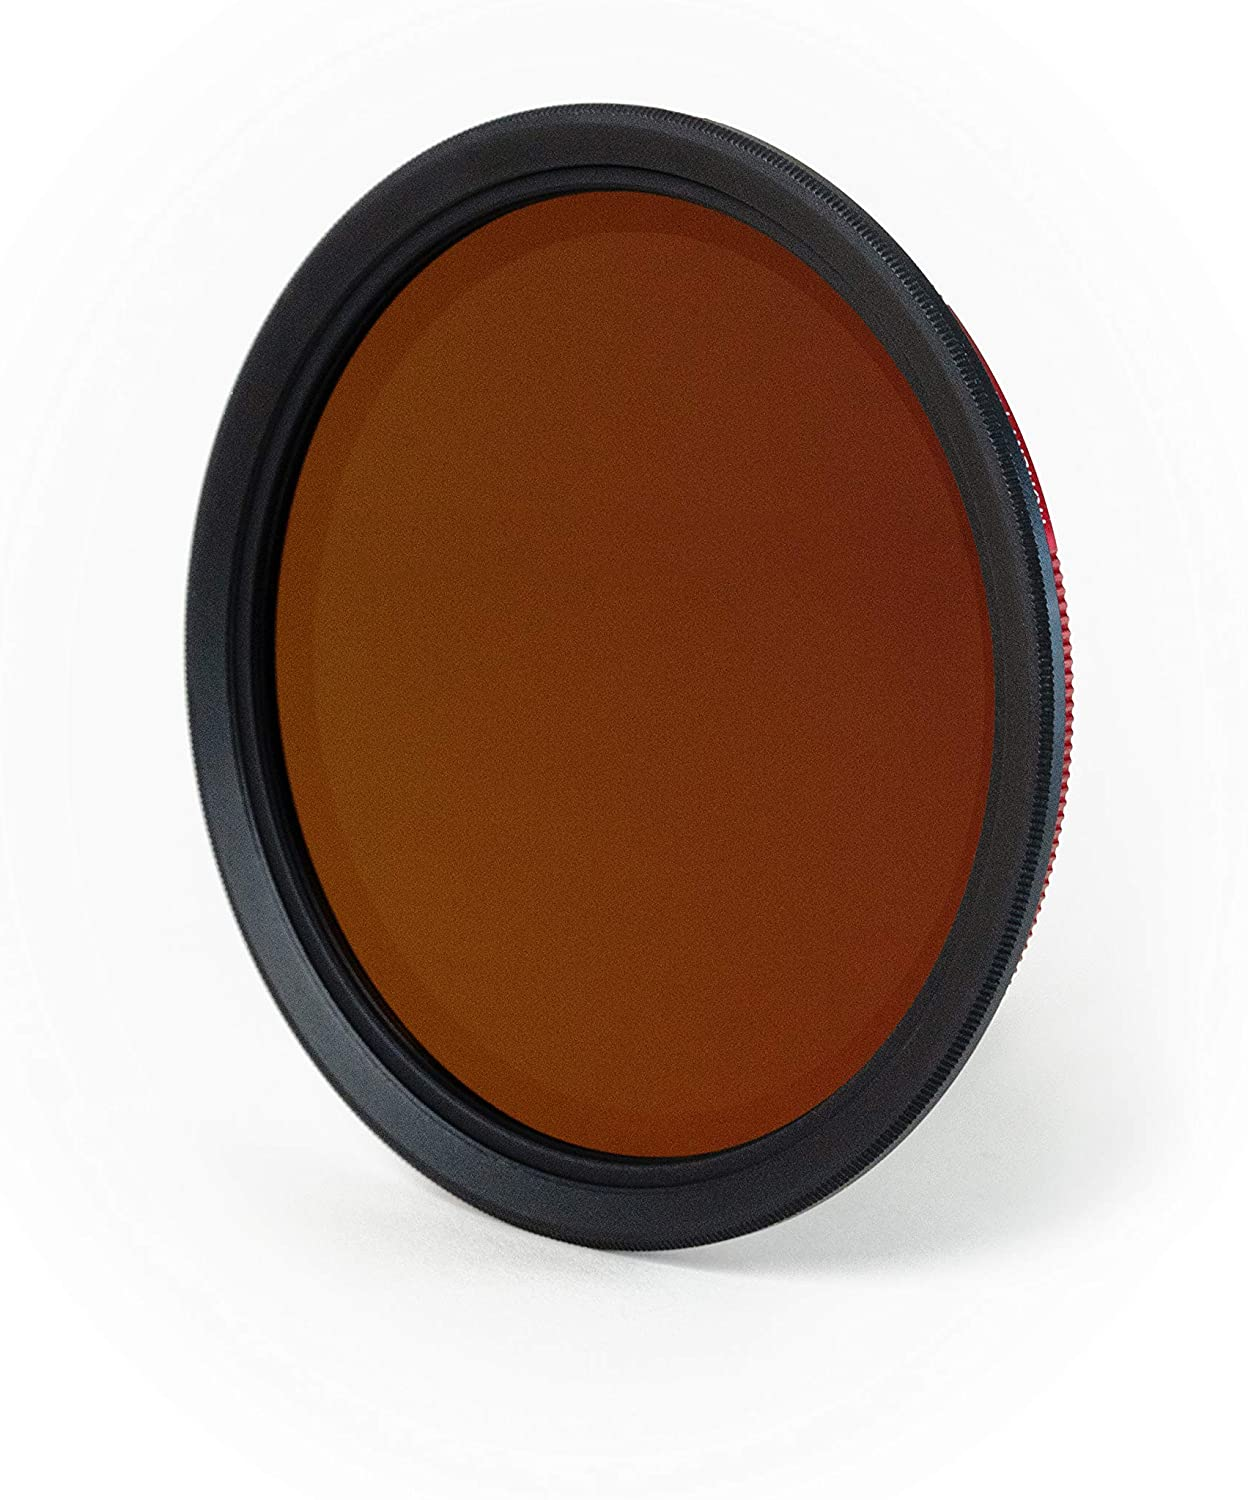 Moment - 77mm Variable ND Filter (2-5 Stops) for Camera Lenses